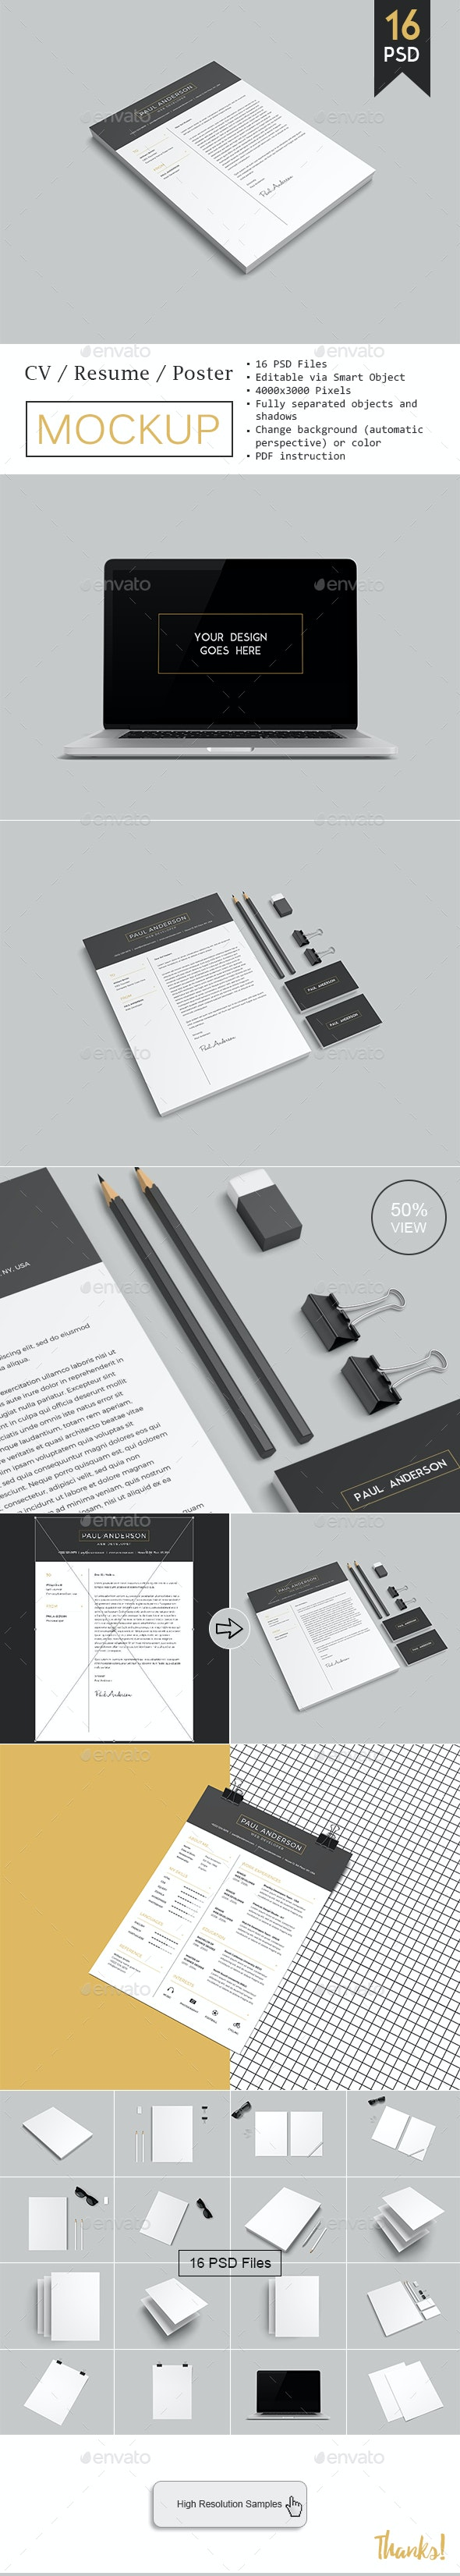 CV / Resume Mockup - Product Mock-Ups Graphics